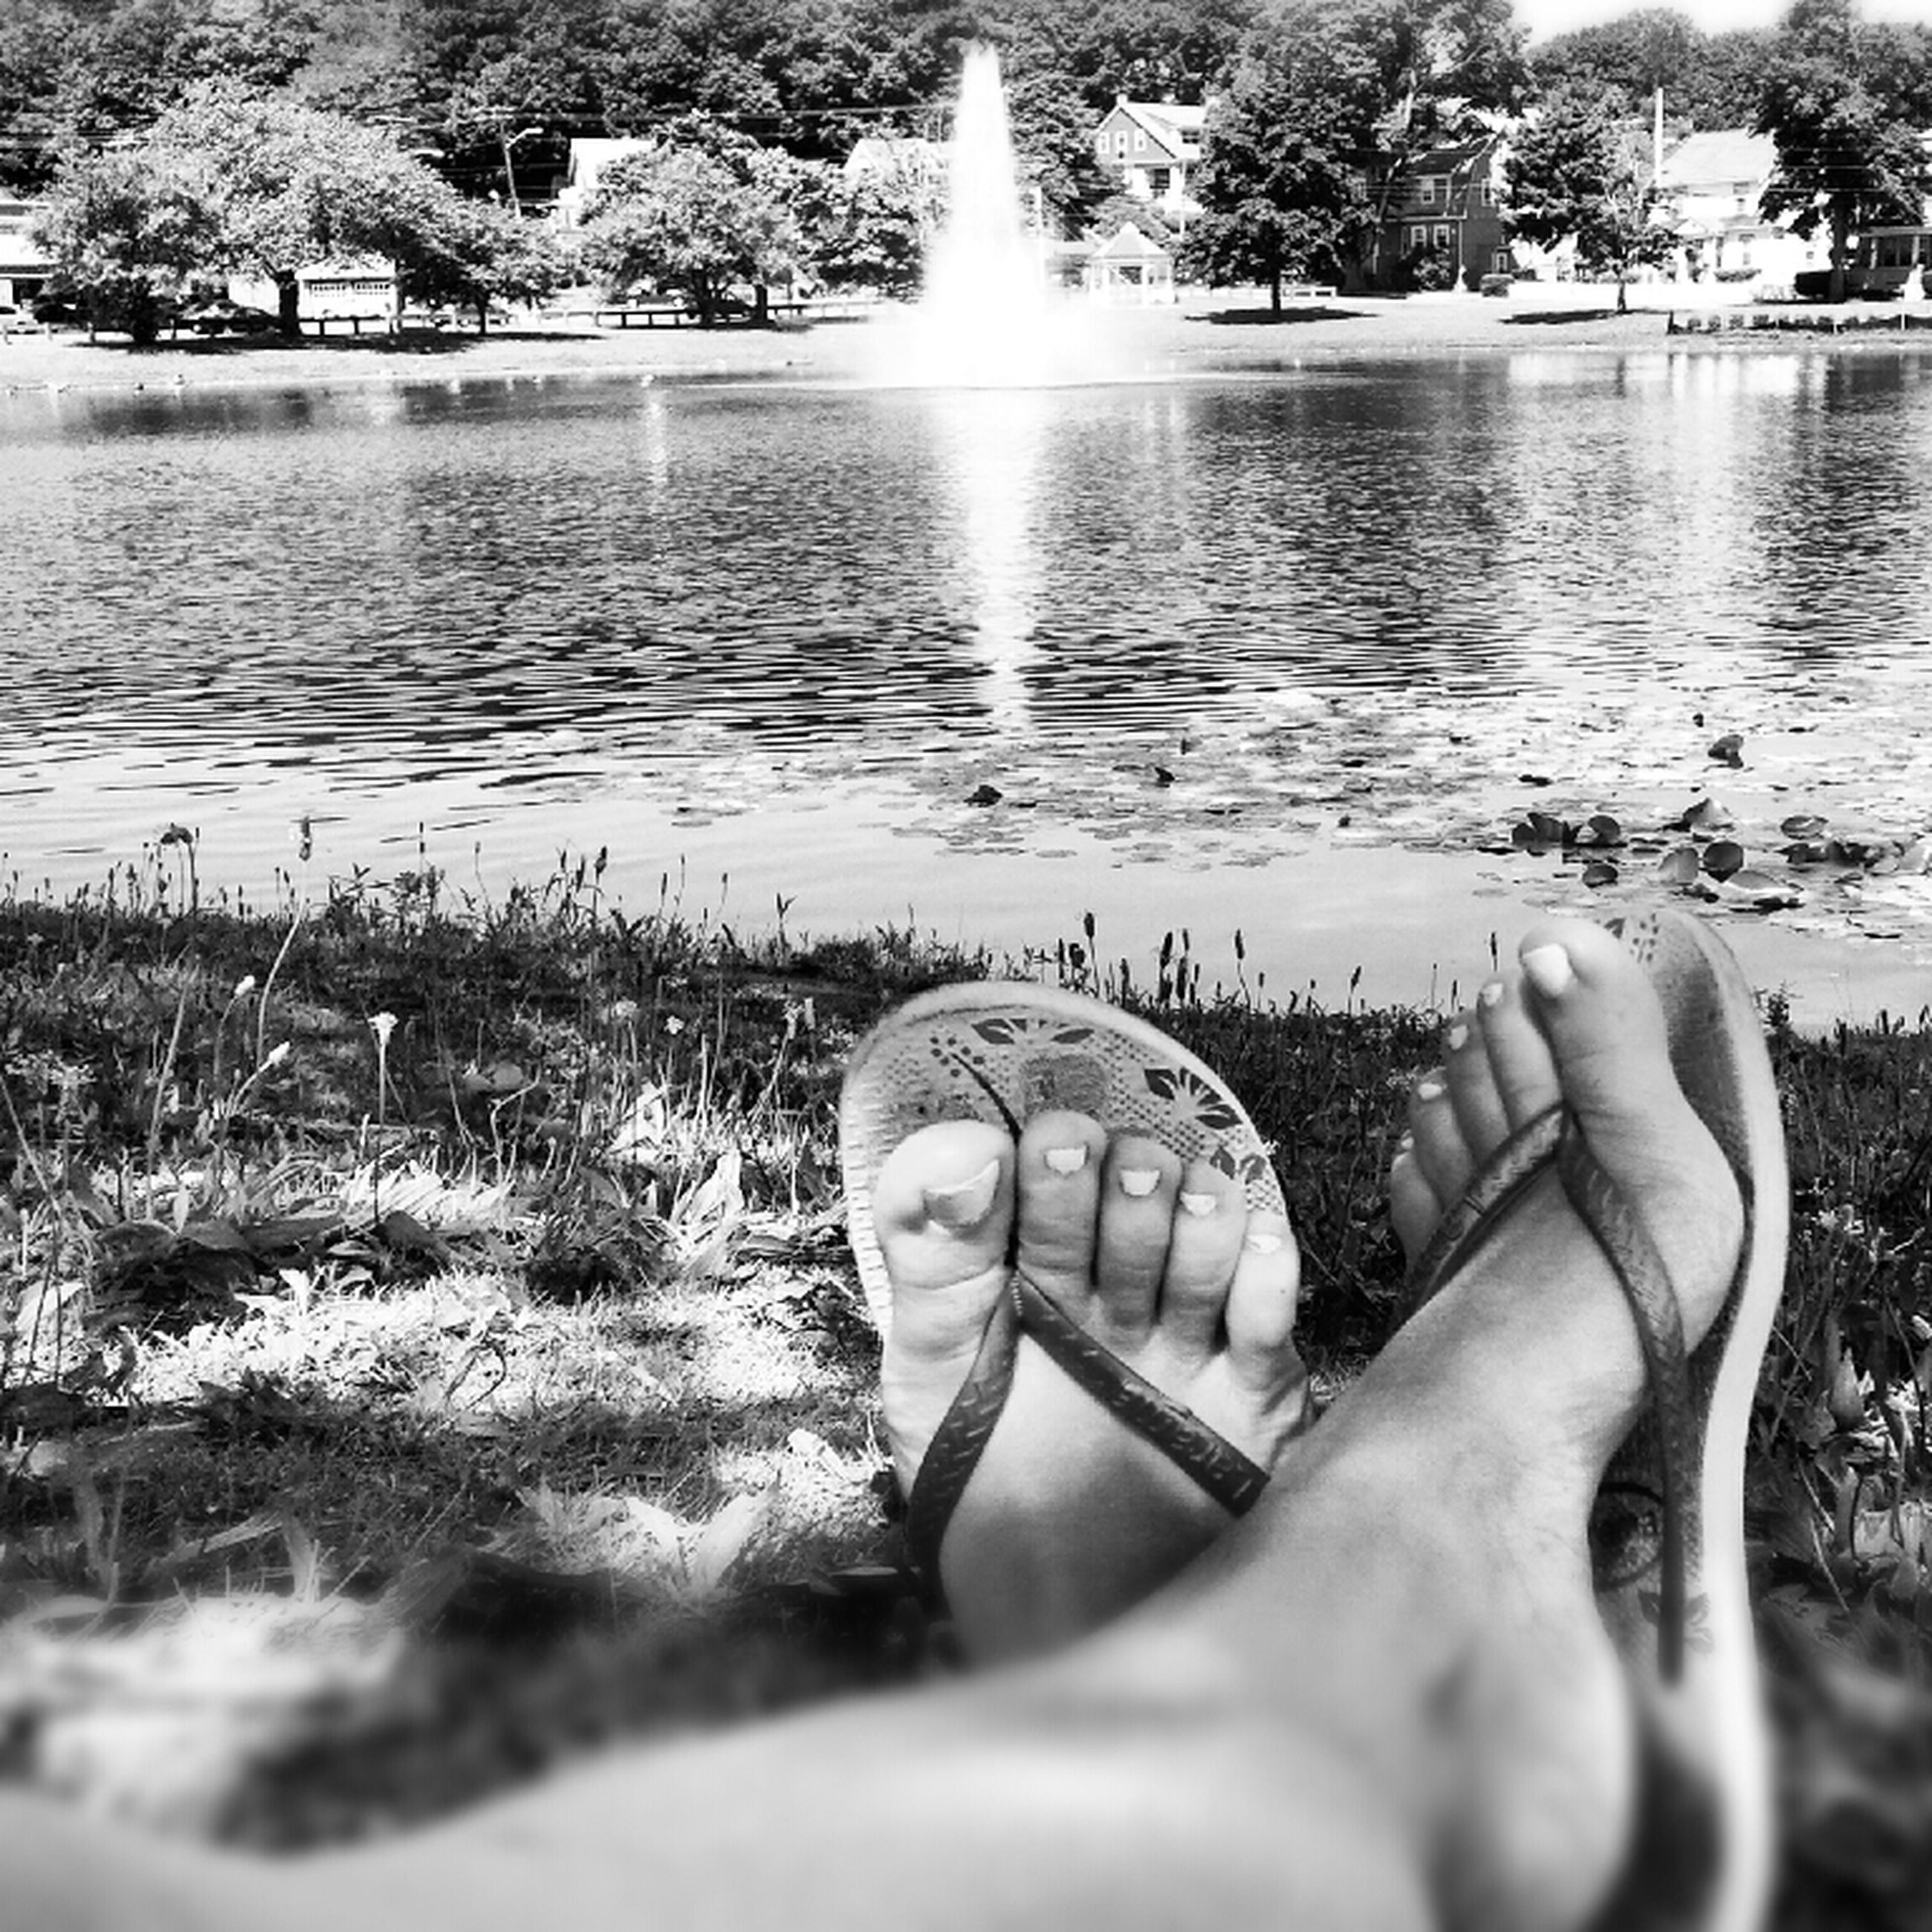 water, low section, leisure activity, person, lifestyles, relaxation, grass, lake, beach, unrecognizable person, men, nature, personal perspective, tranquility, sunlight, human foot, tree